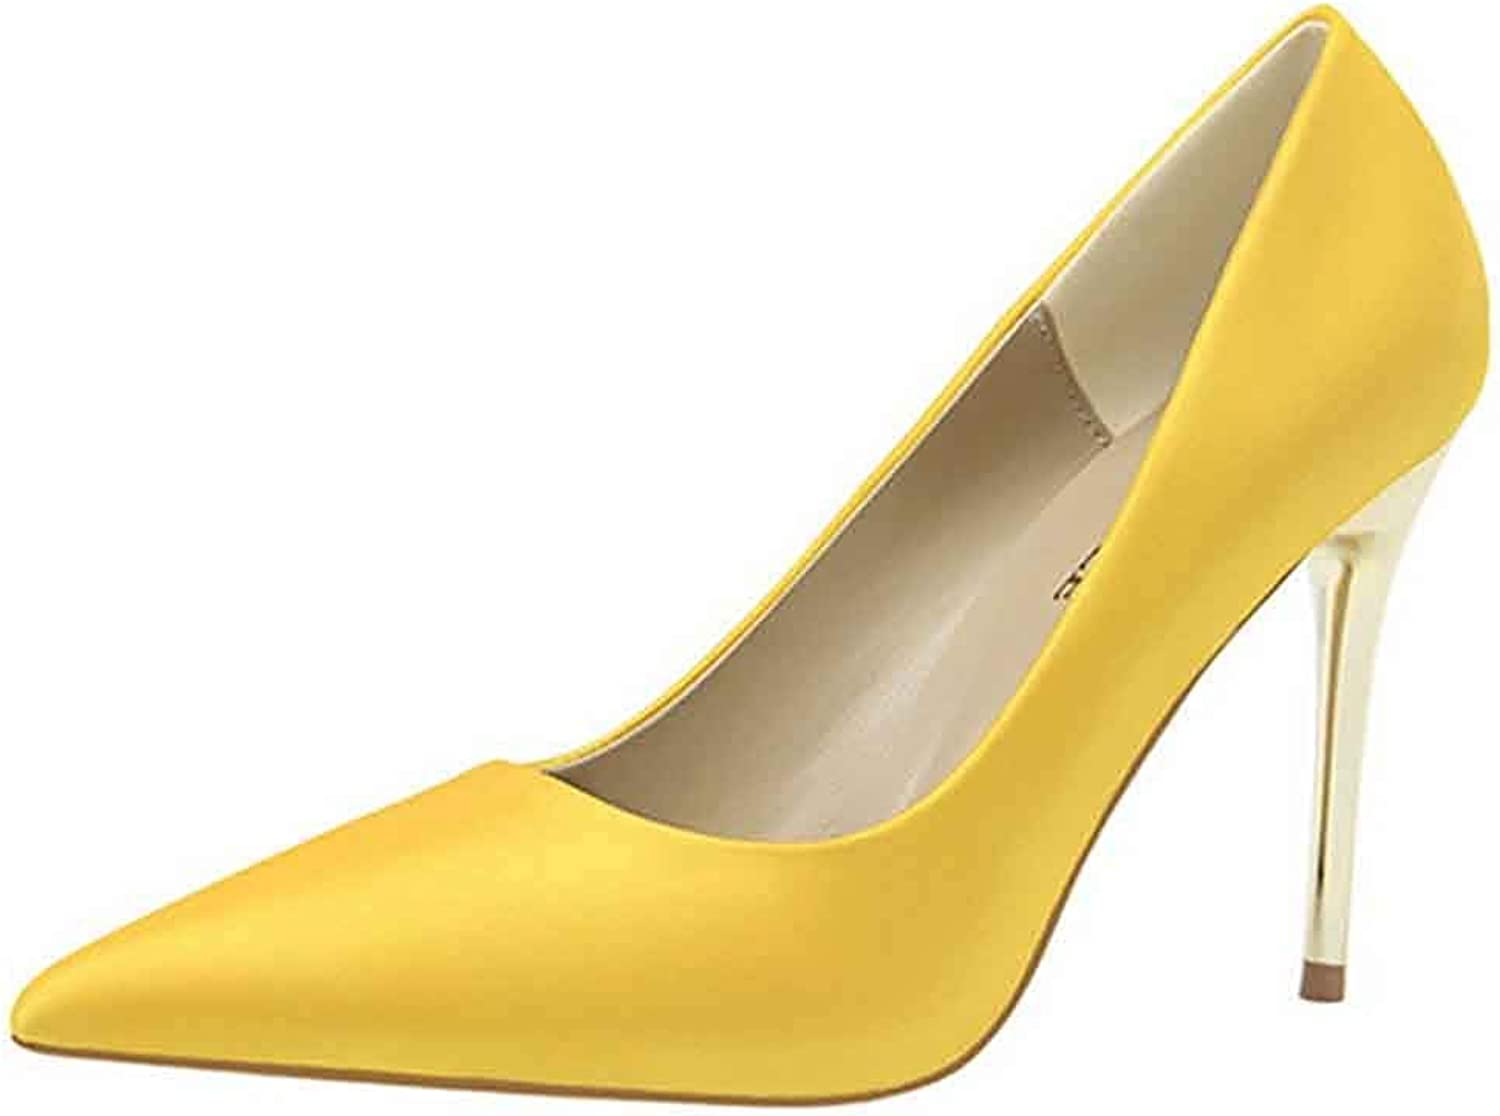 Unm Women's Elegant Simple Low Cut Slip On Pointed Toe Stiletto High Heel Pumps Party Wedding shoes